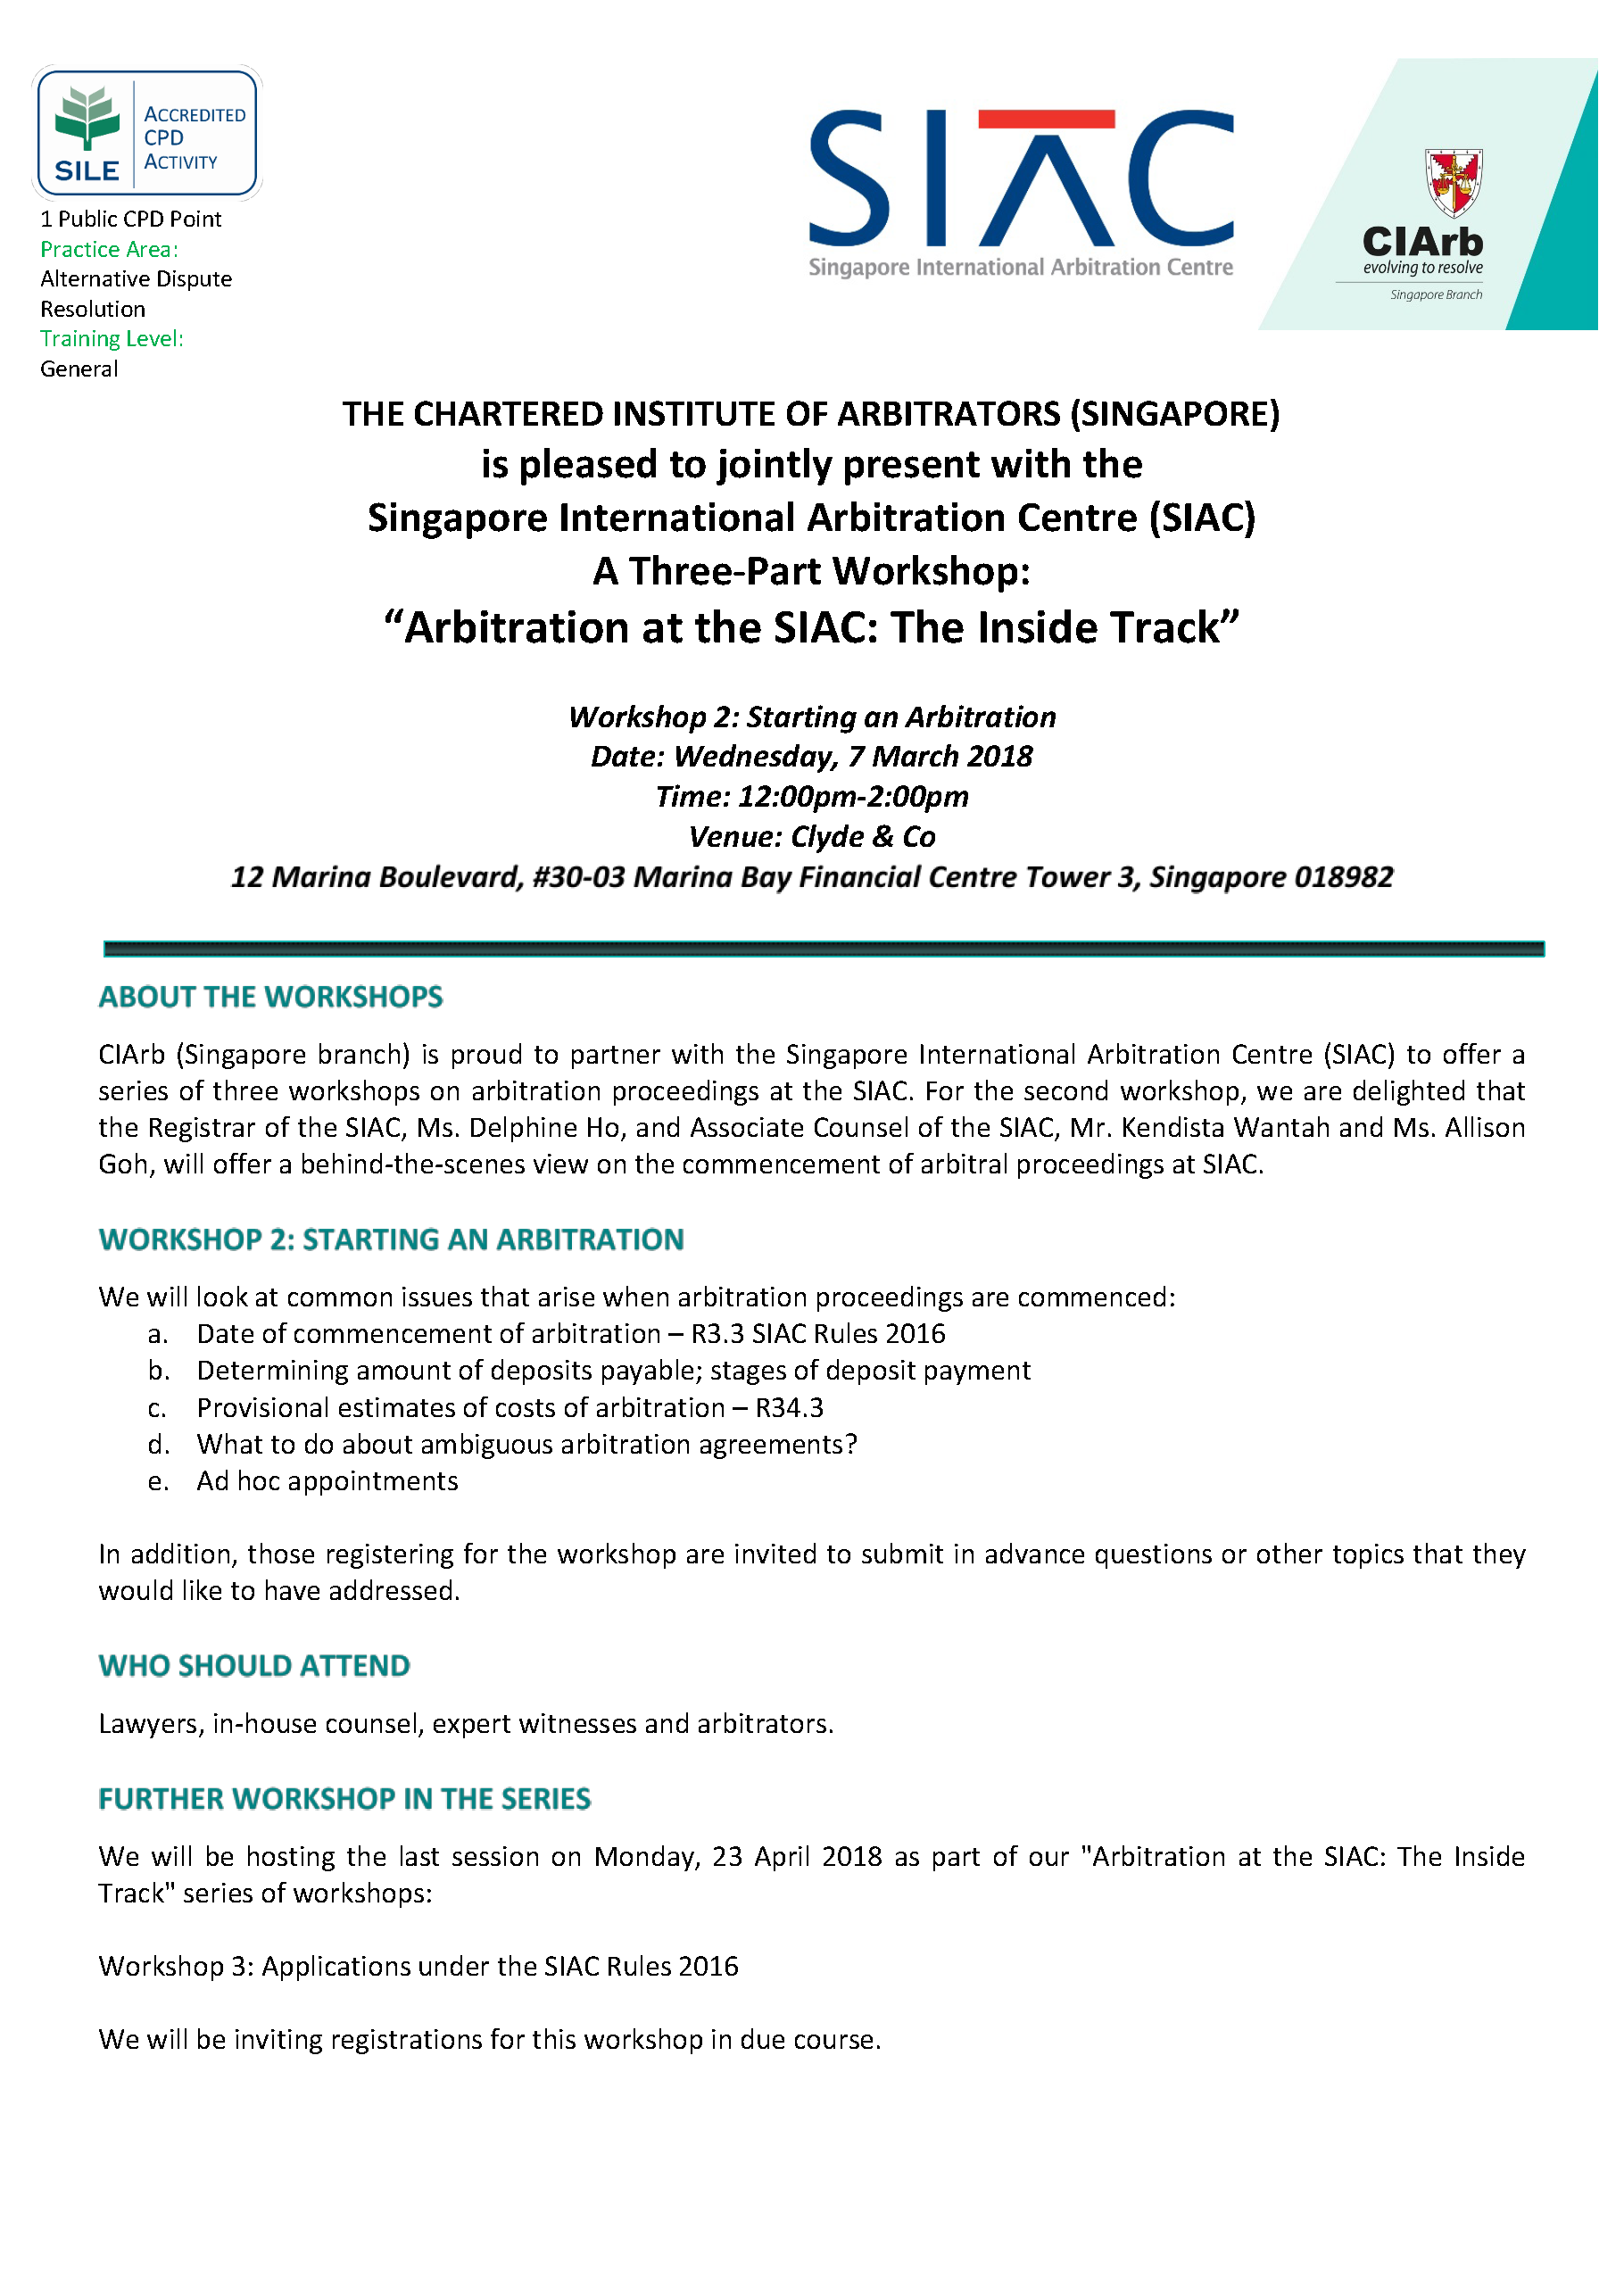 images/Arbitration at the SIAC - Workshop 2 v2_Page_1.png